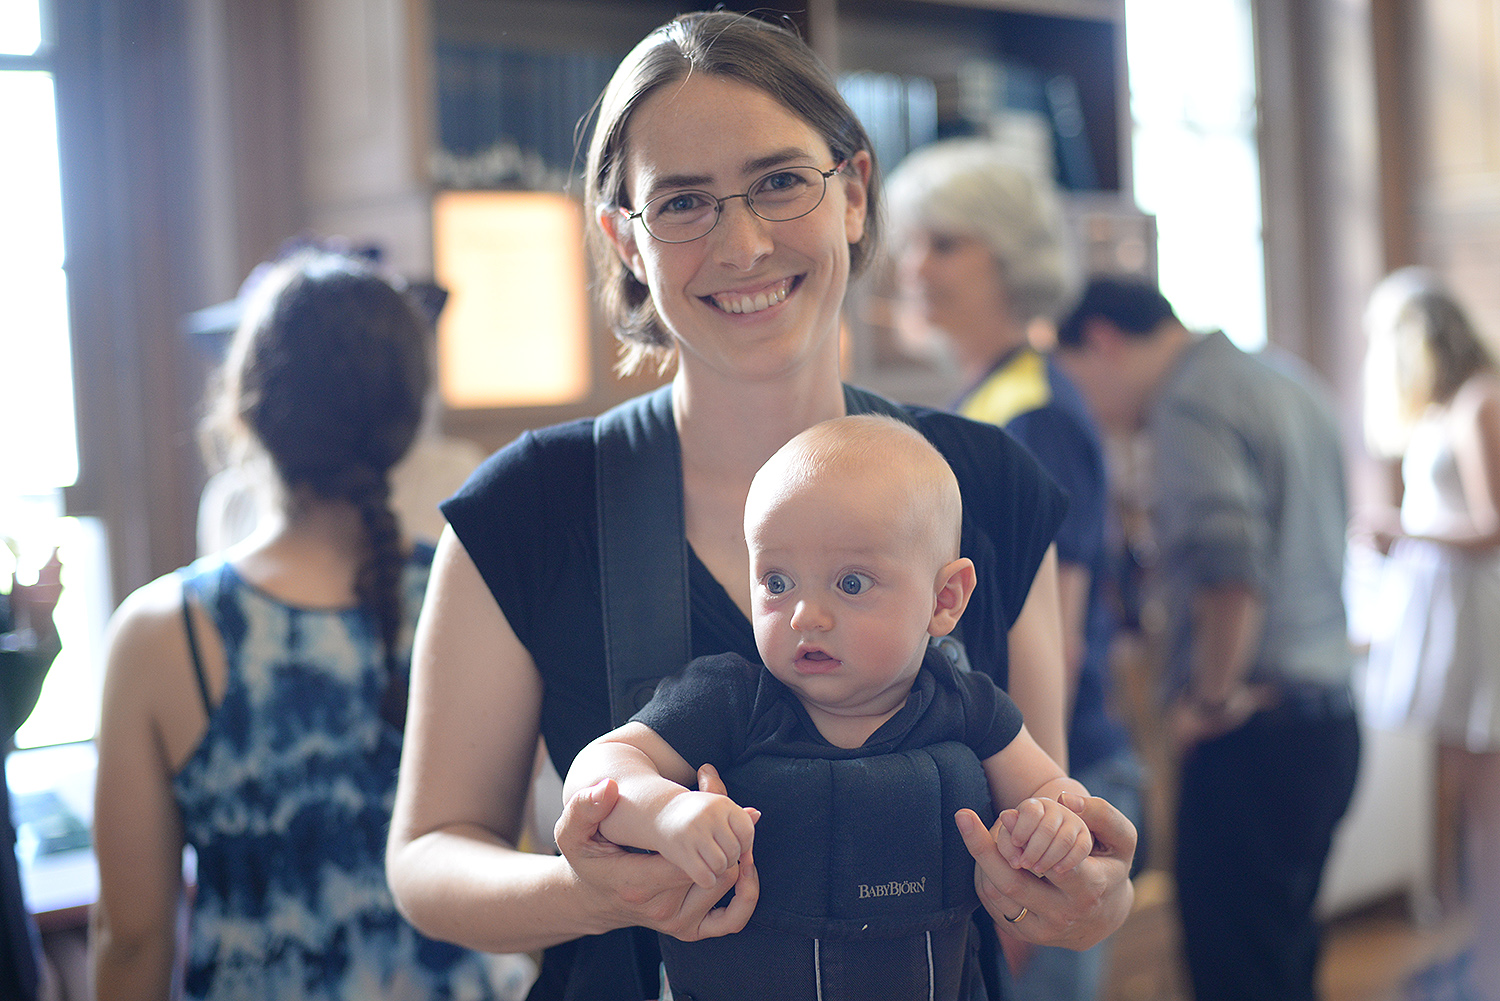 Meredith Hughes, assistant professor of astronomy, and her four-month-old son, Soren, attended the Van Vleck Observatory Centennial celebration.